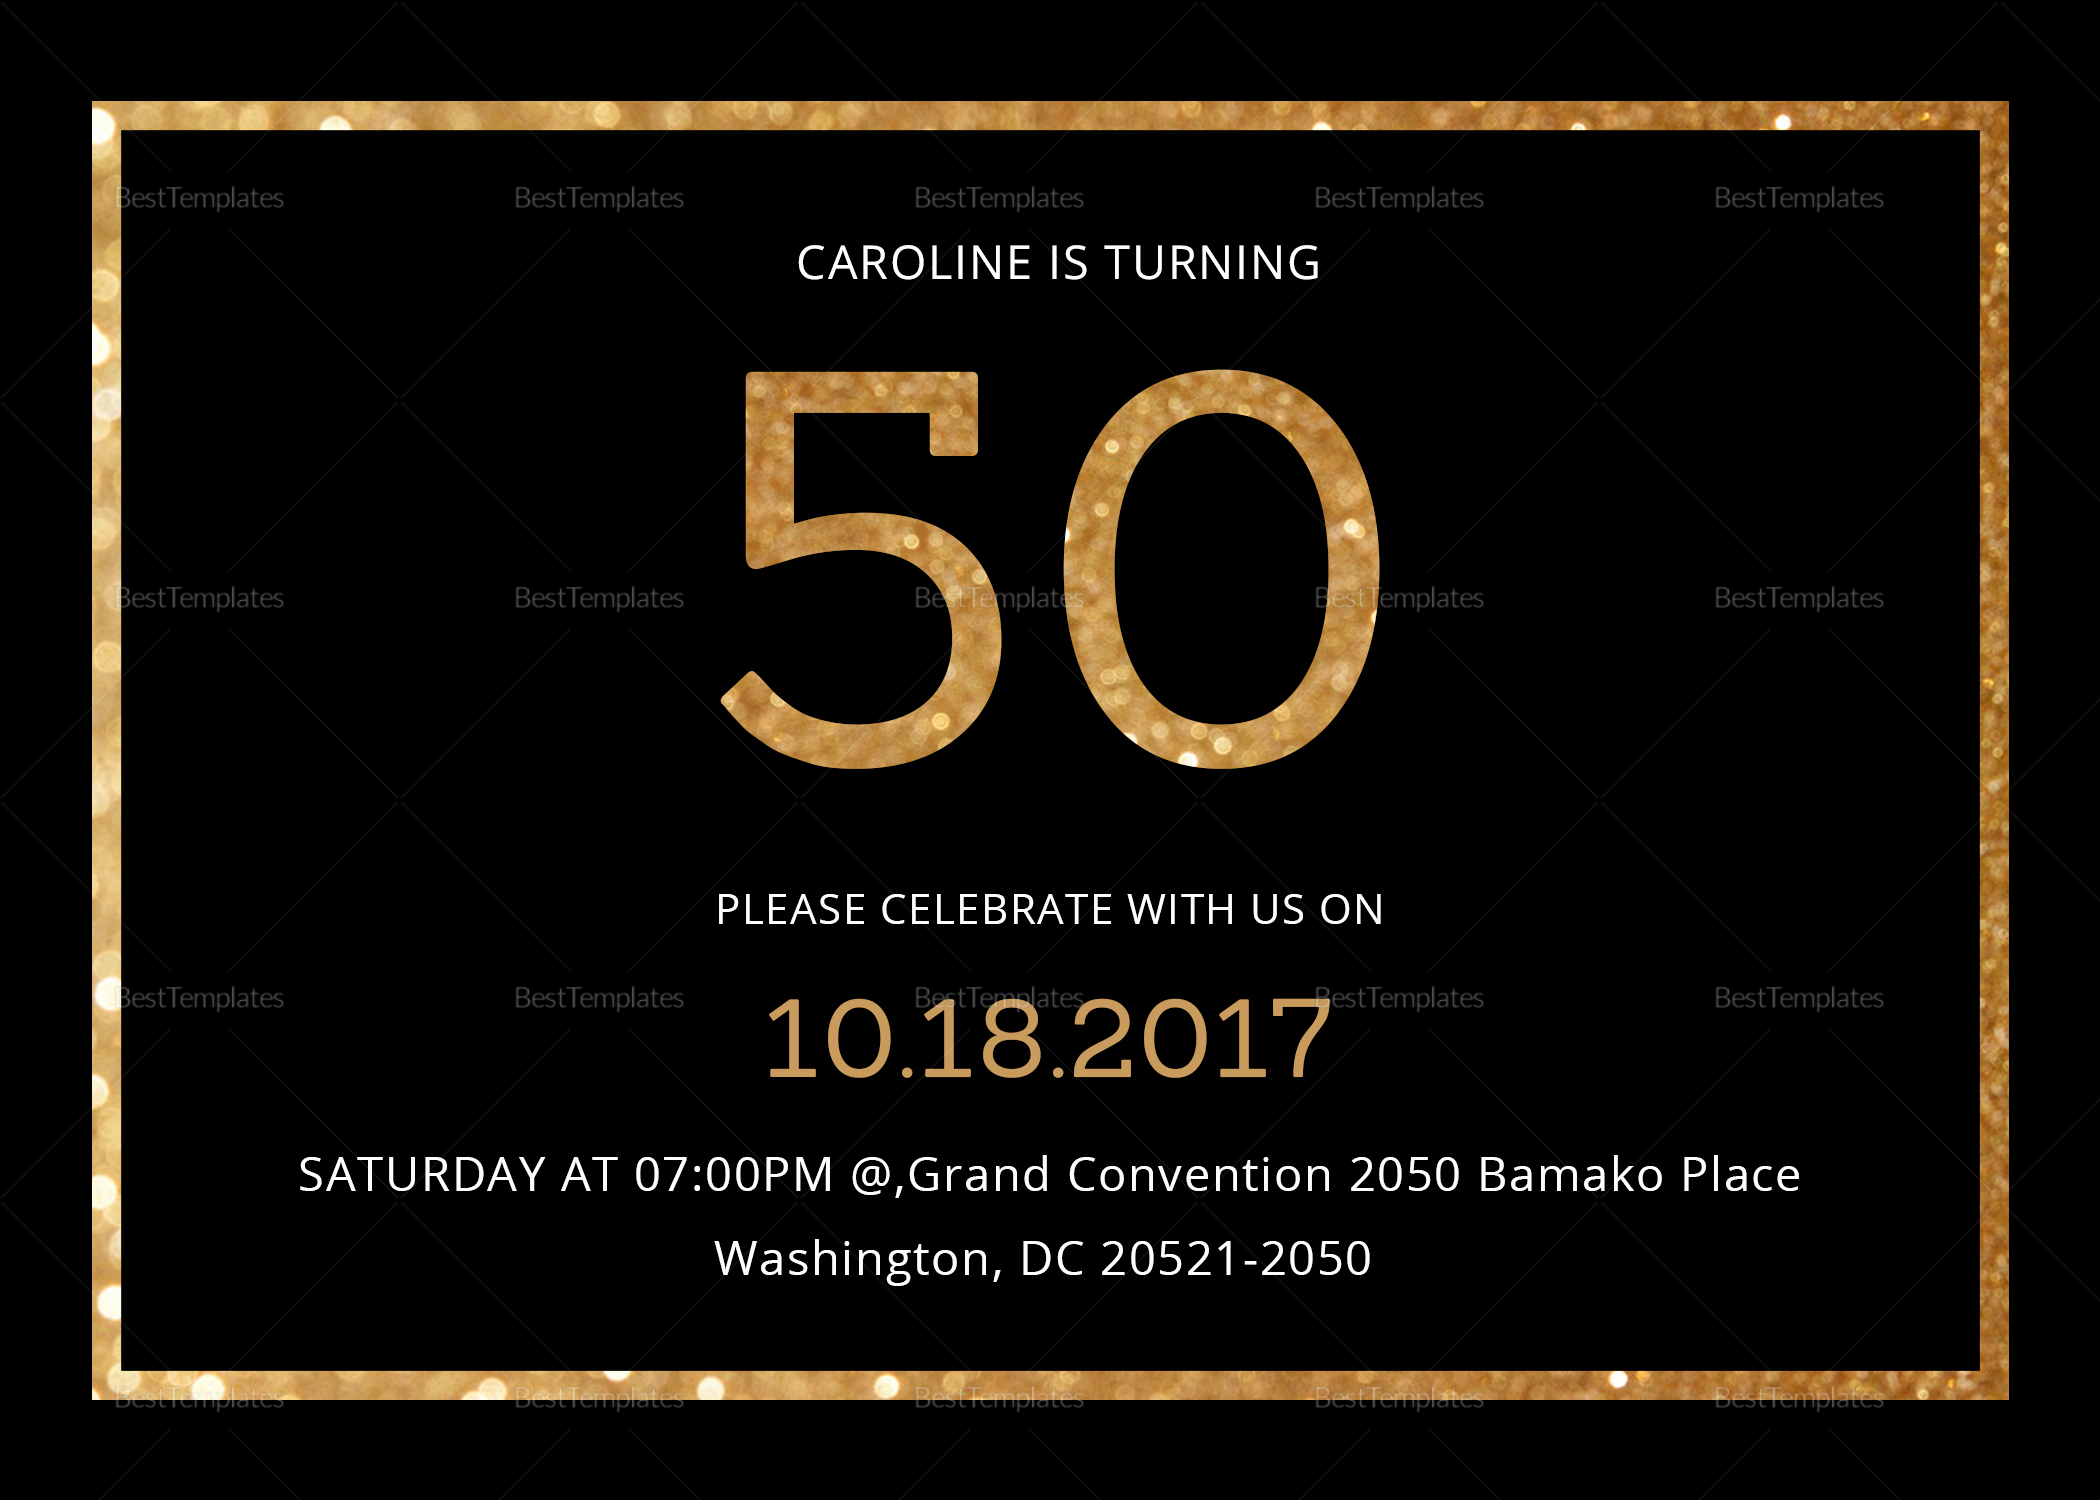 50th Birthday Invitation Templates Word Luxury Elegant Black and Gold 50th Birthday Invitation Design